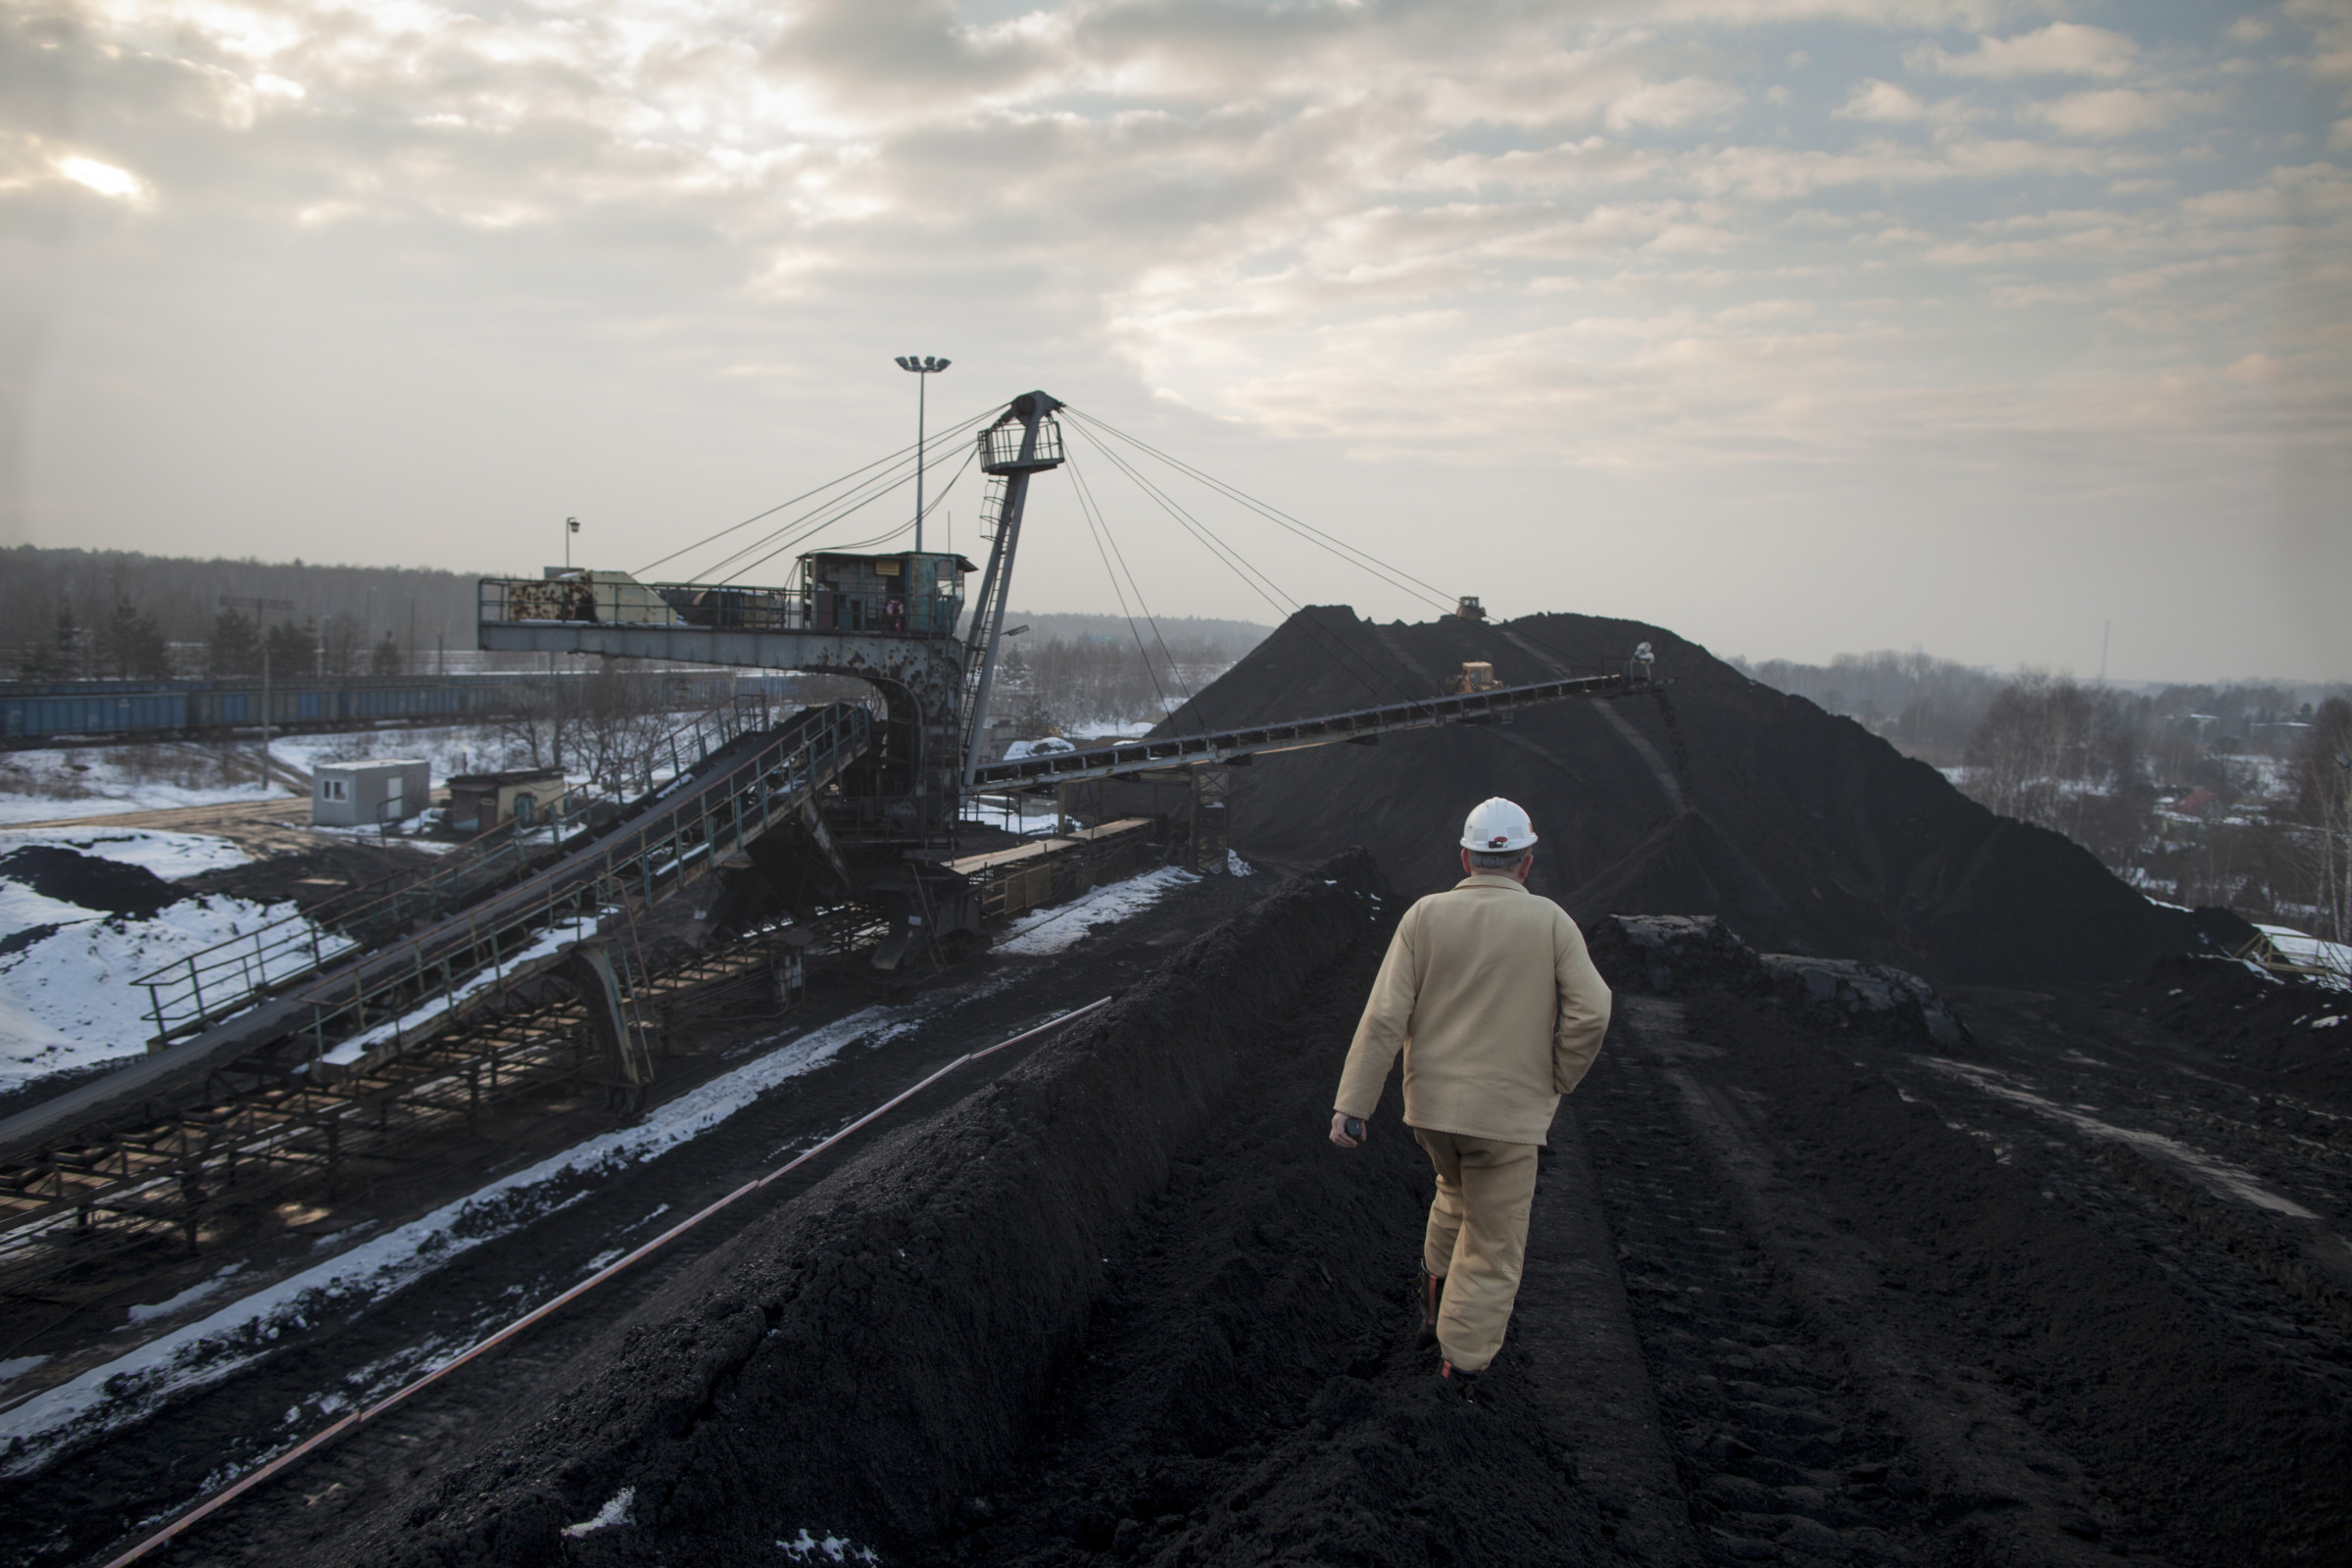 A worker walks across a storage dump of coking coal as a conveyor belt deposits newly processed coal at the Bielszowice mine, operated by Kompania Weglowa SA, in Ruda Slaska, Poland. Photographer: Bartek Sadowski/Bloomberg